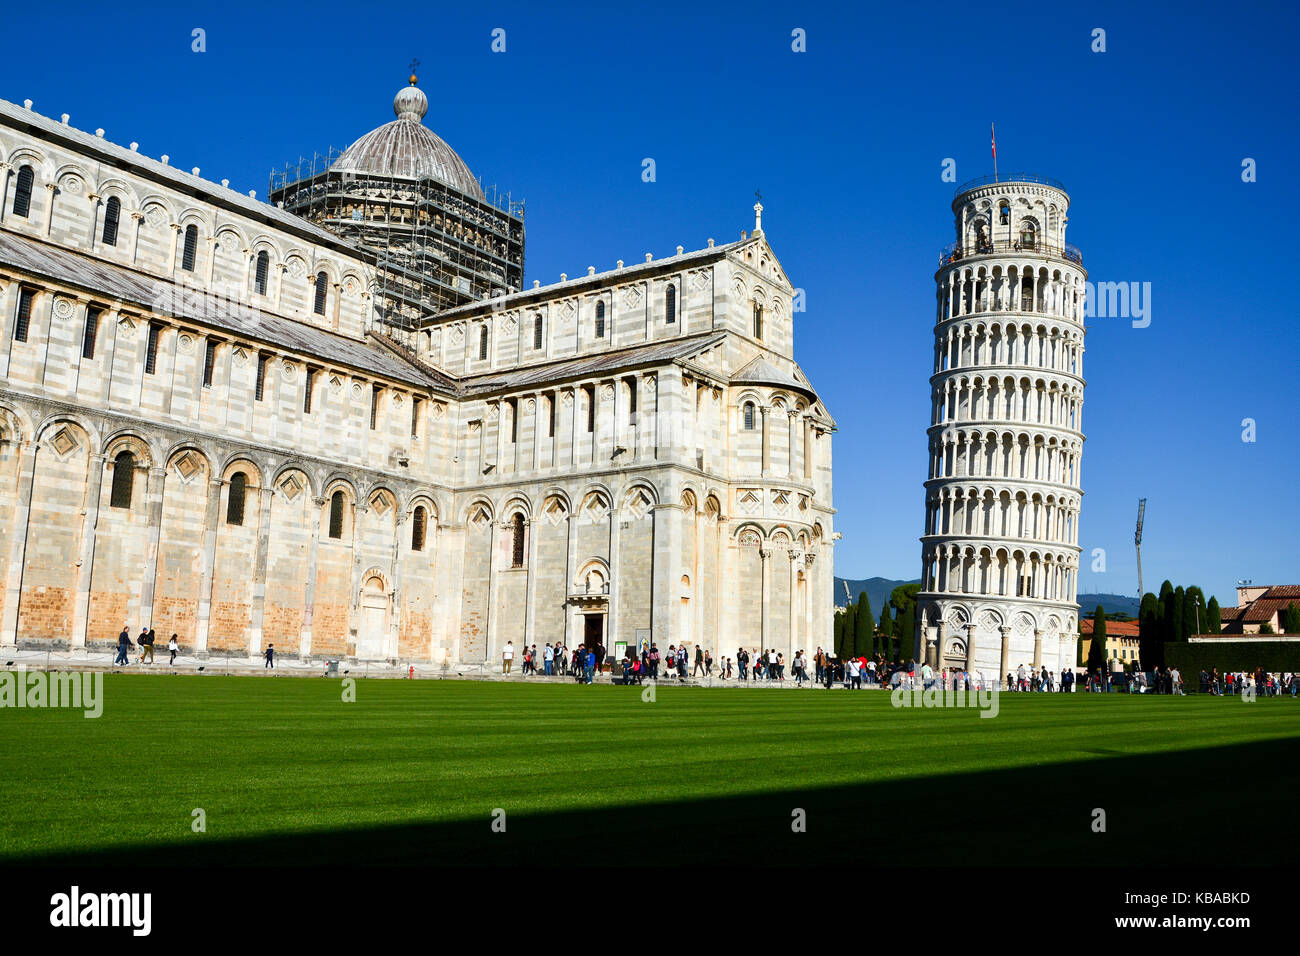 Side view of the Pisa Cathedral with the Leaning Tower of Pisa in the background, Pisa, ItalyStock Photo